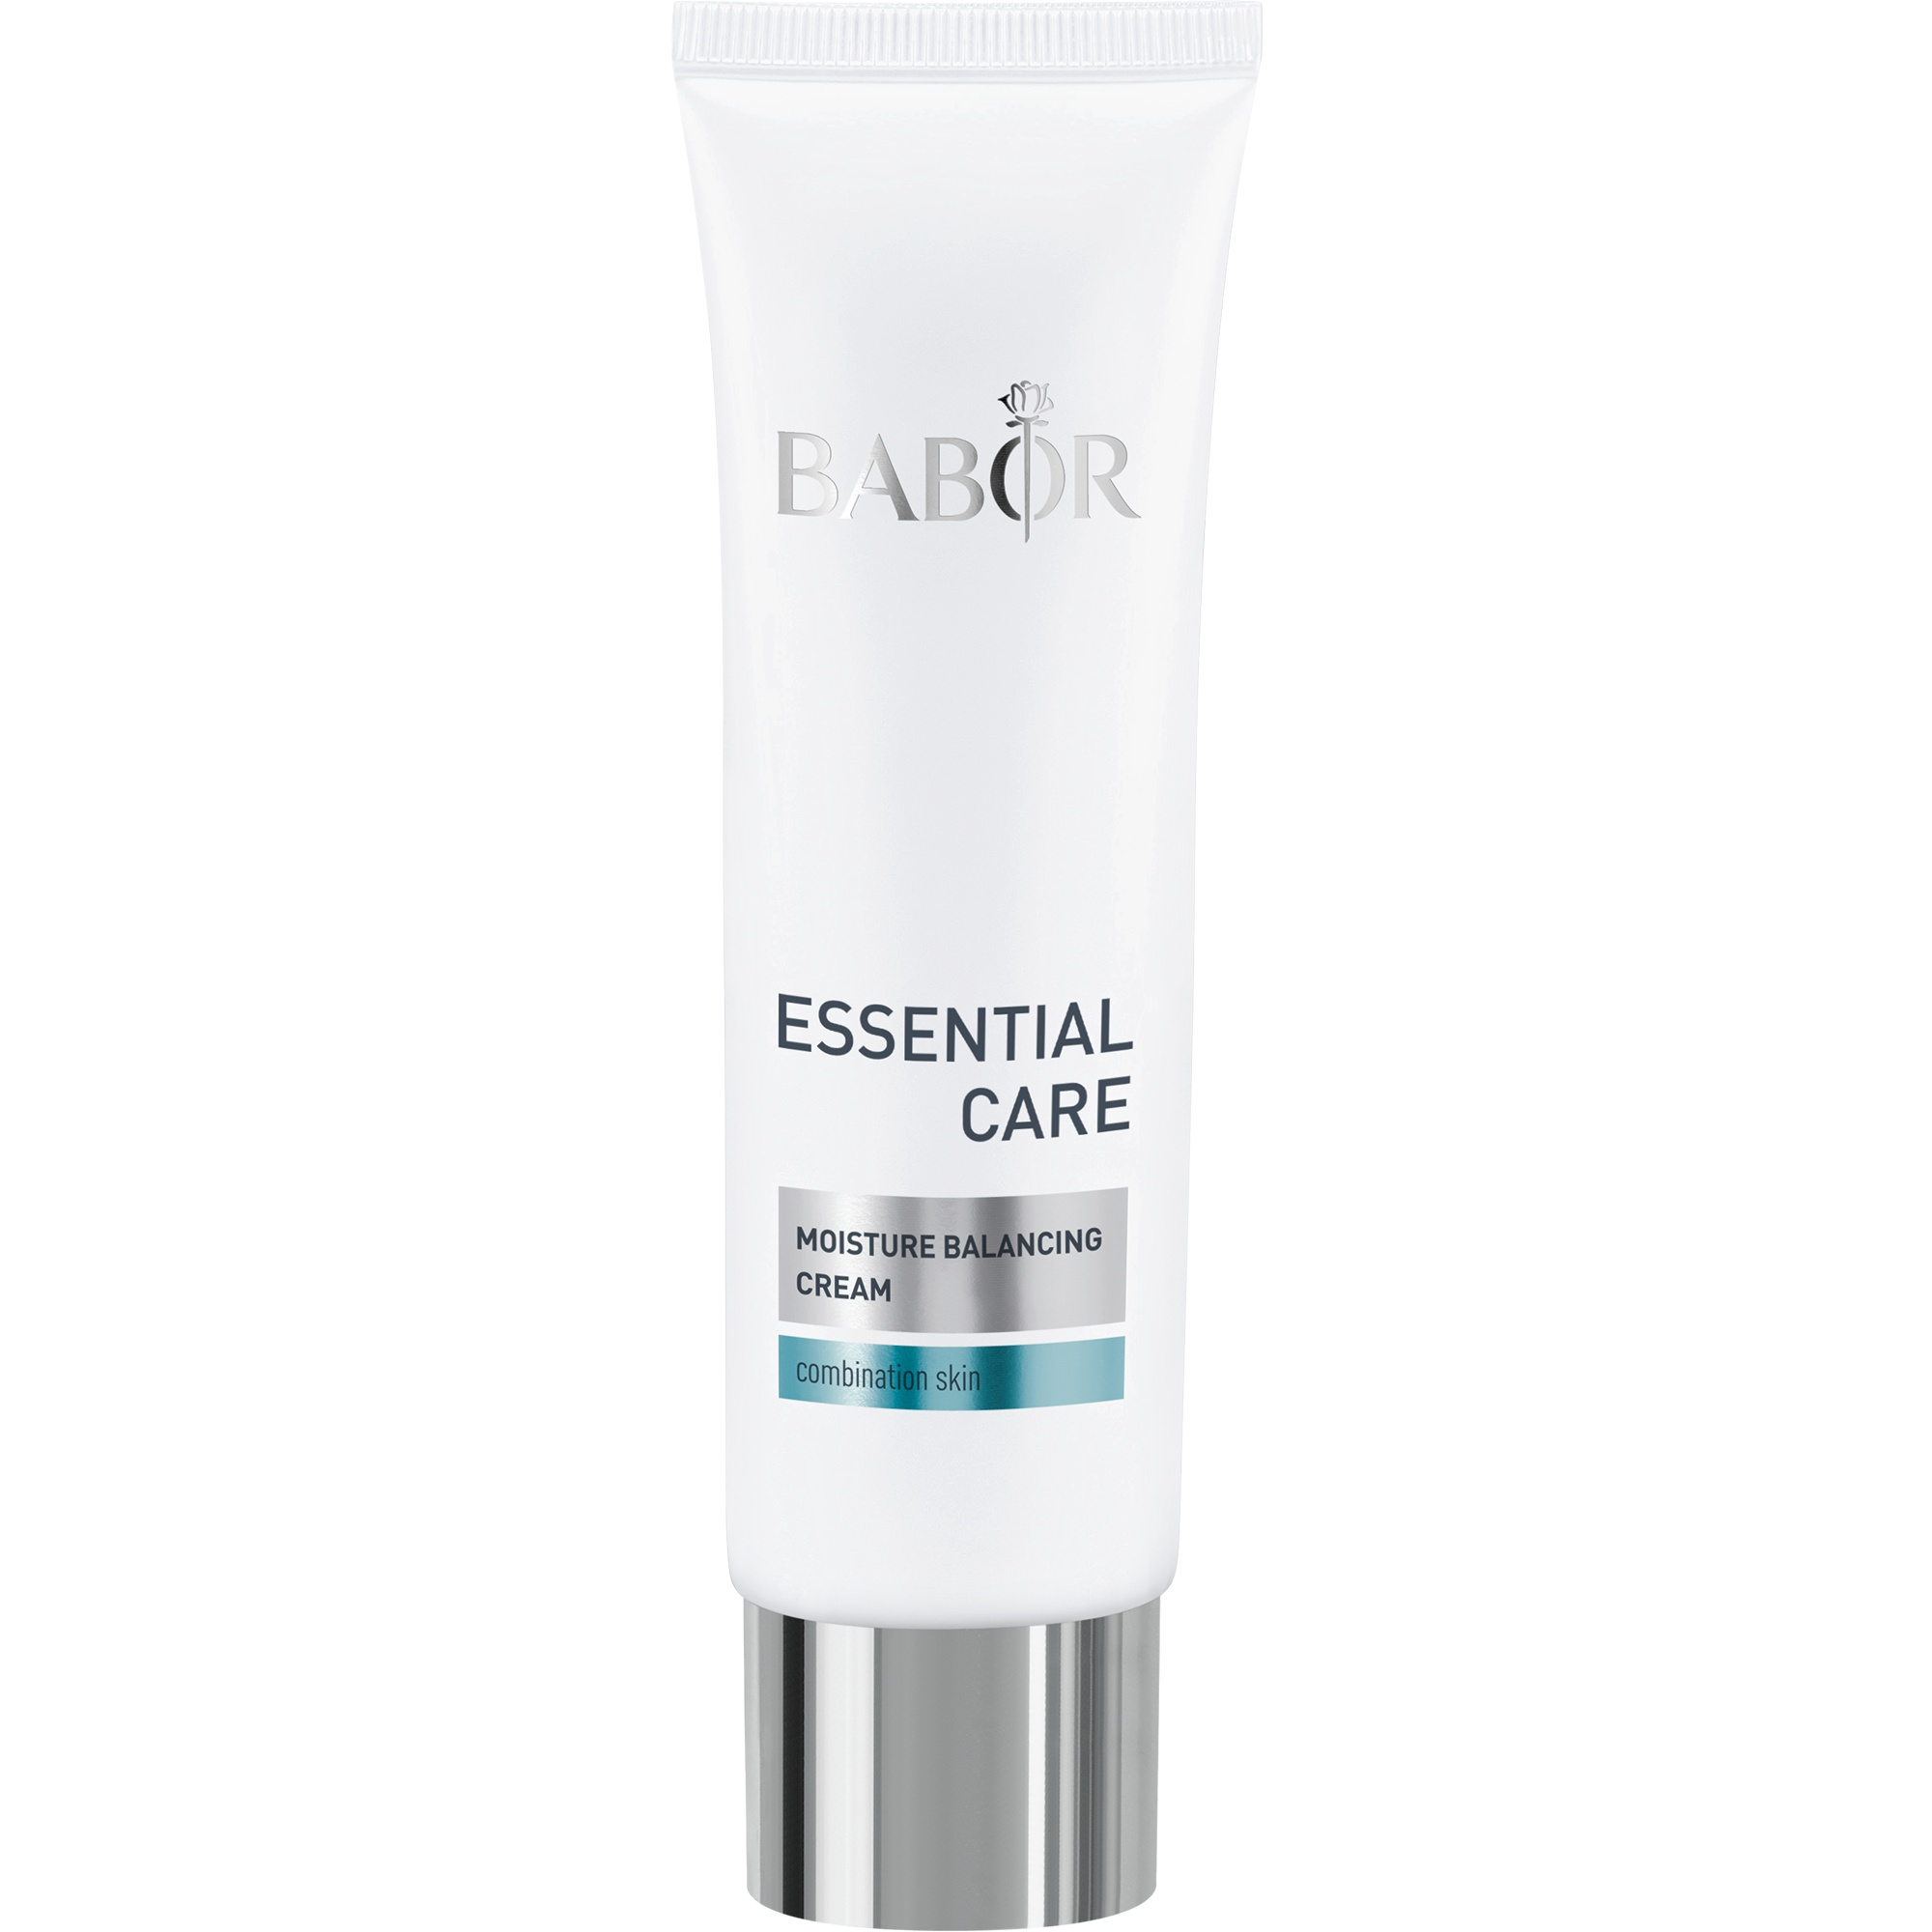 Essential Care Moisture Balancing Cream